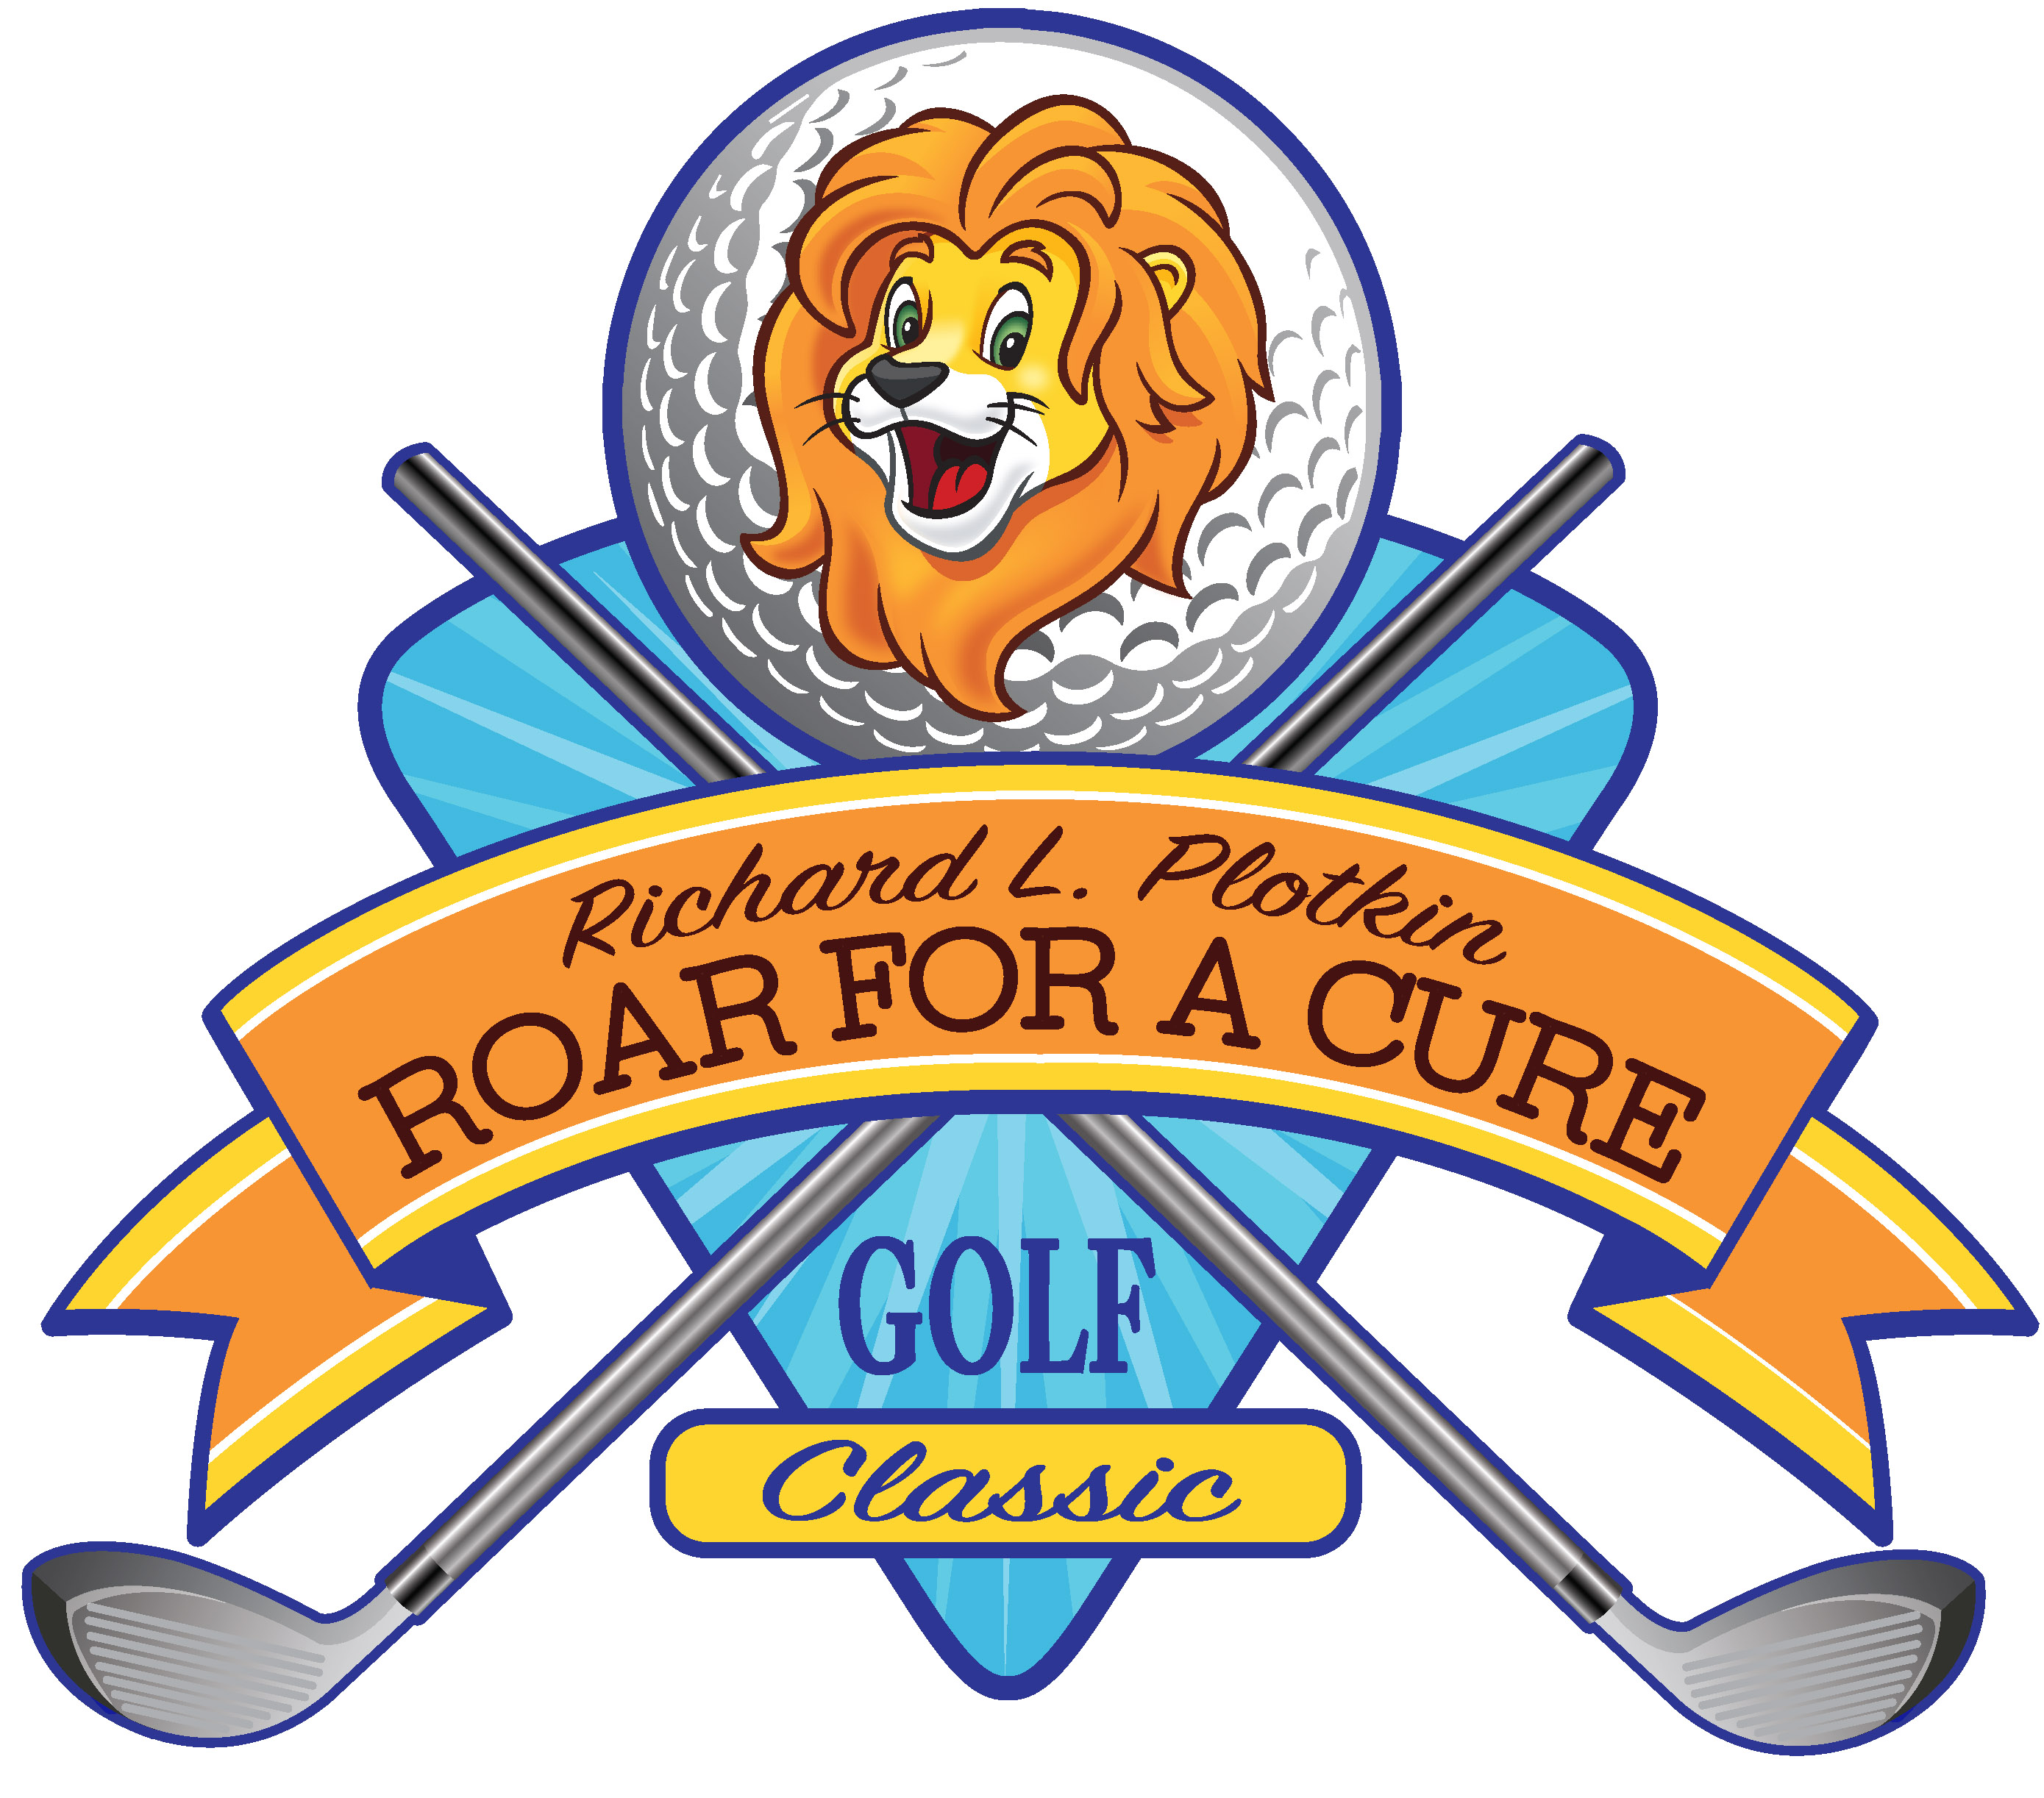 3rd Annual Roar For A Cure Golf Classic